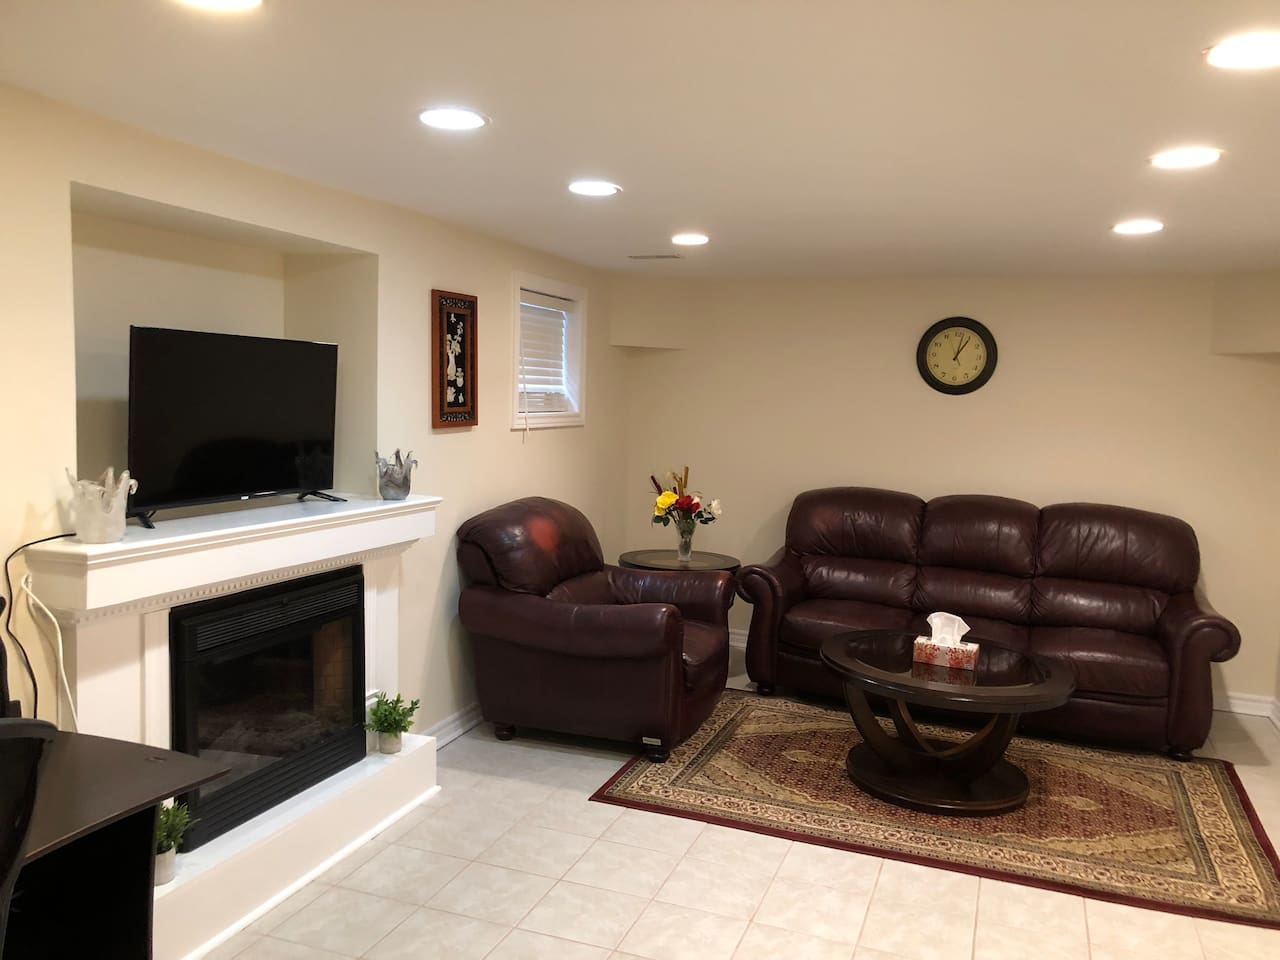 Living room with desk and TV - Netflix